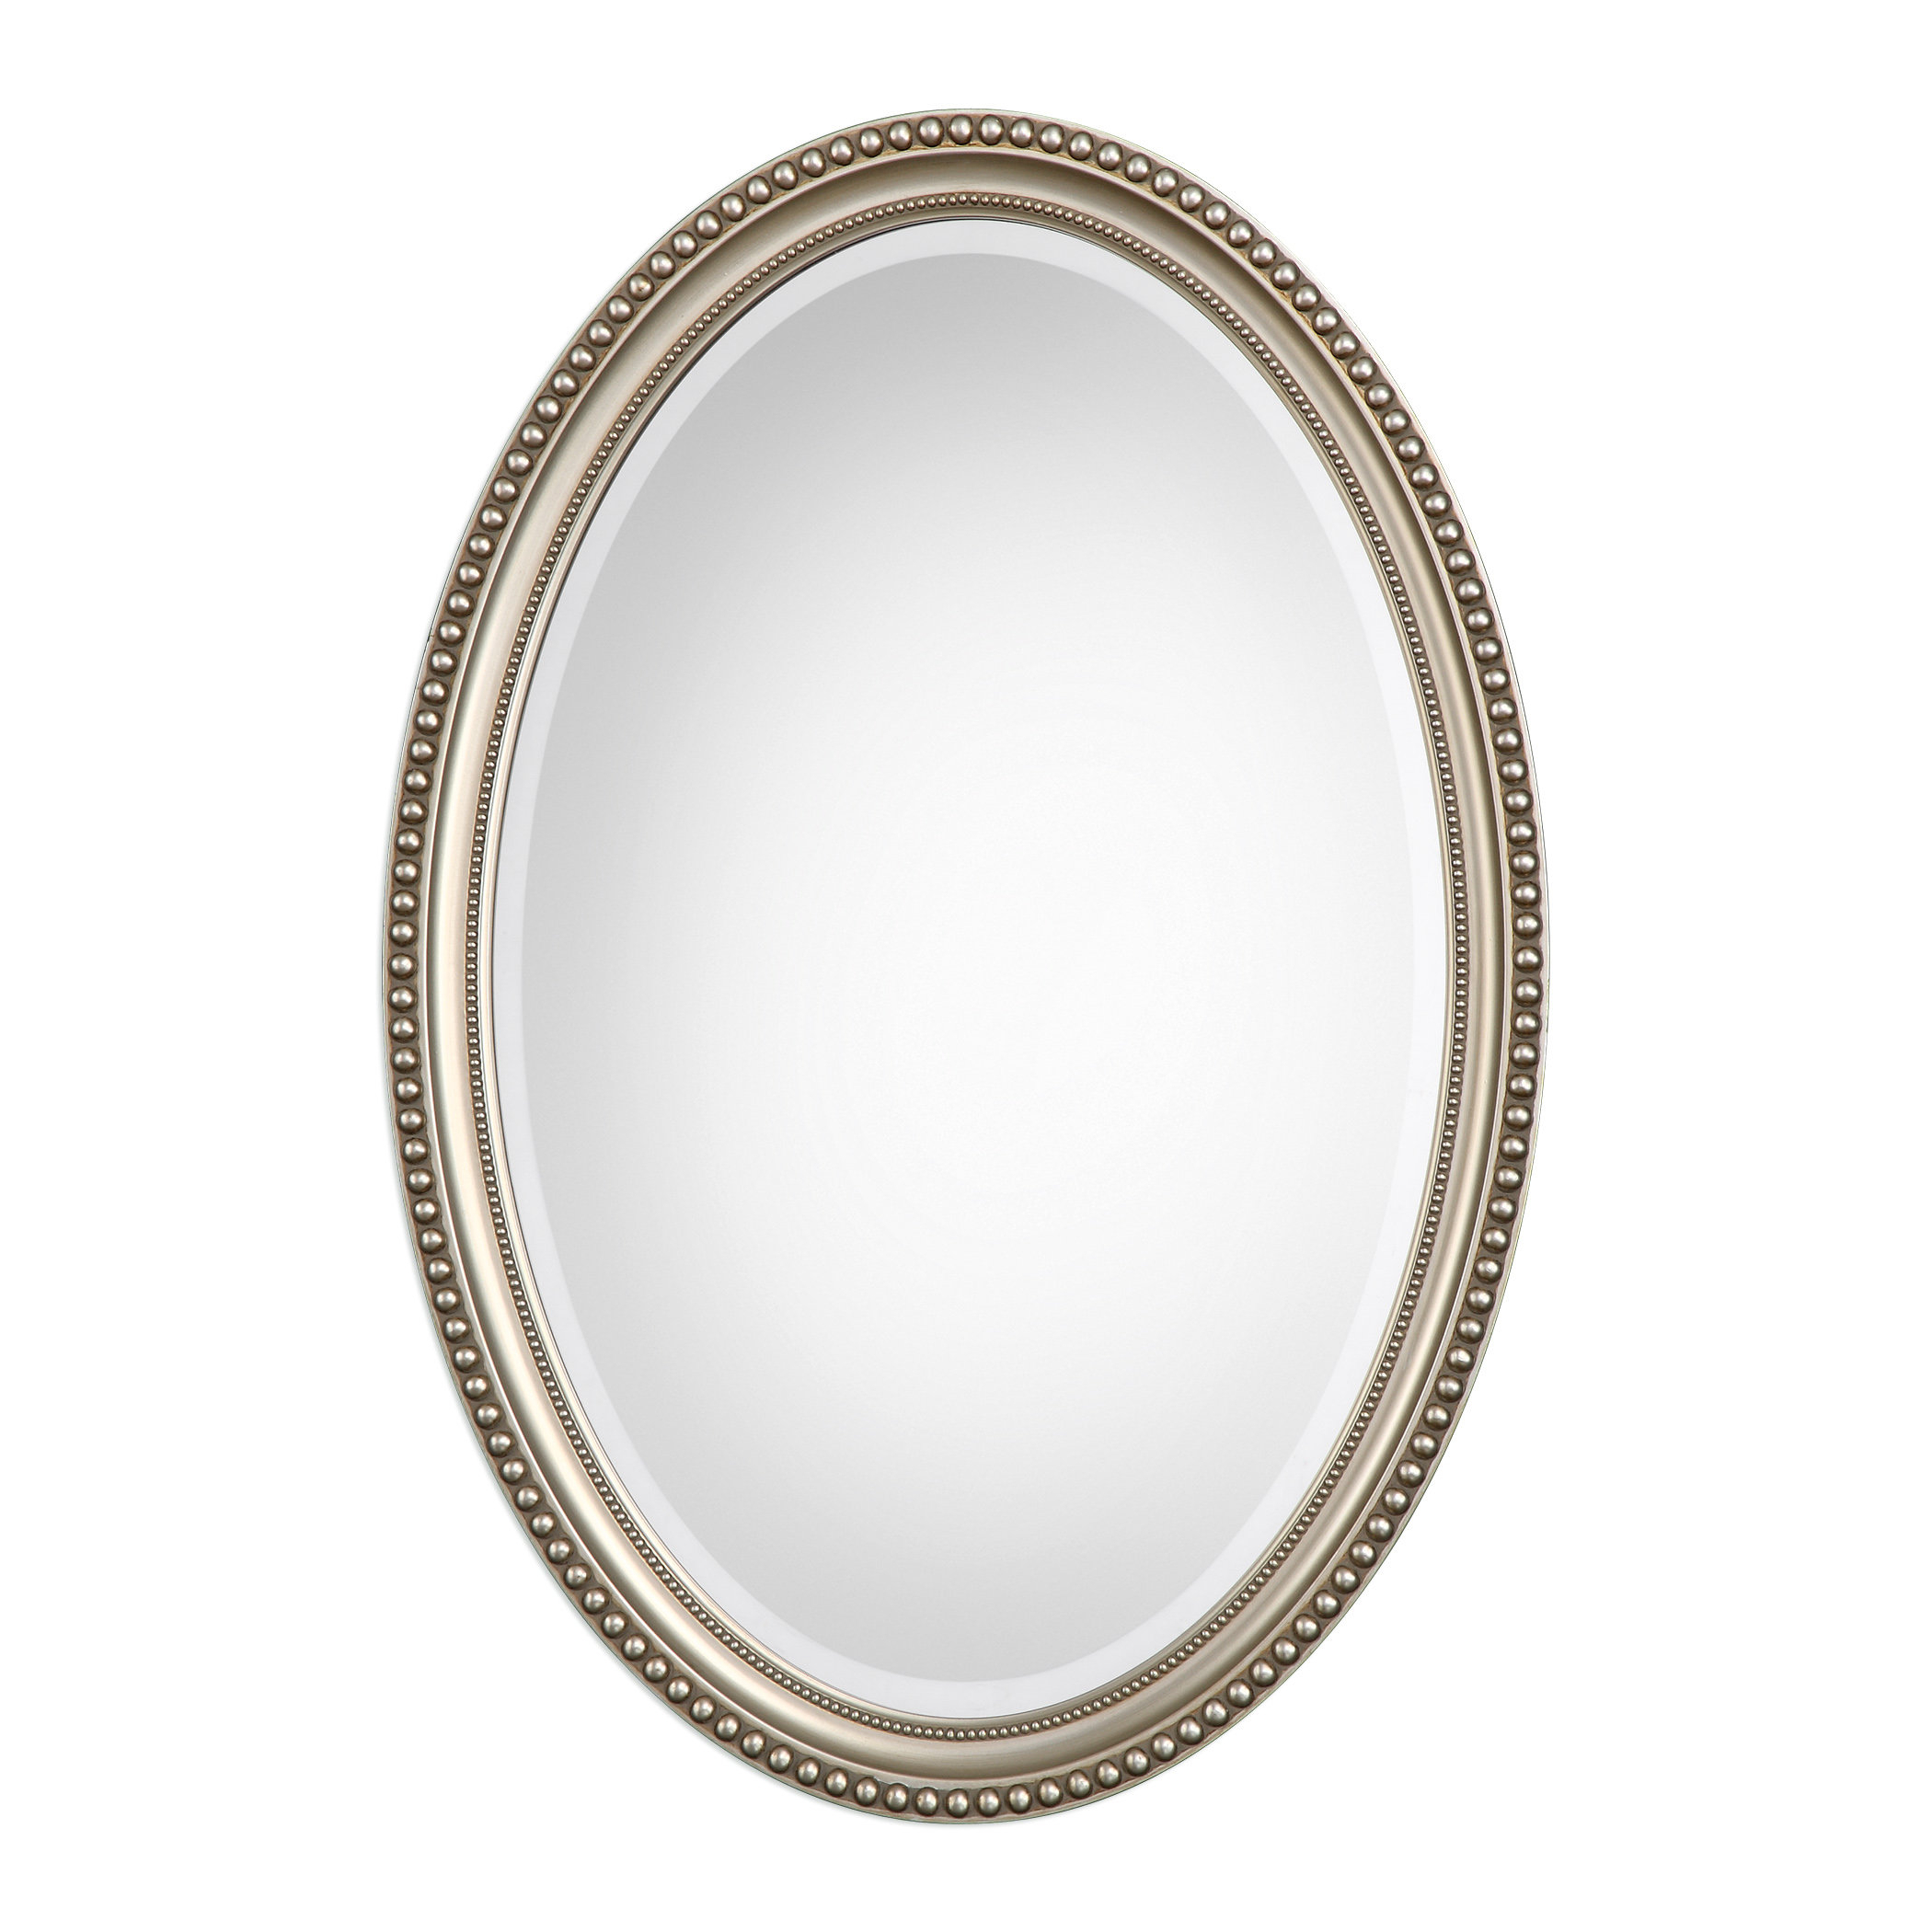 Oval Wall Mirrors | Joss & Main Intended For Burnes Oval Traditional Wall Mirrors (Image 15 of 20)